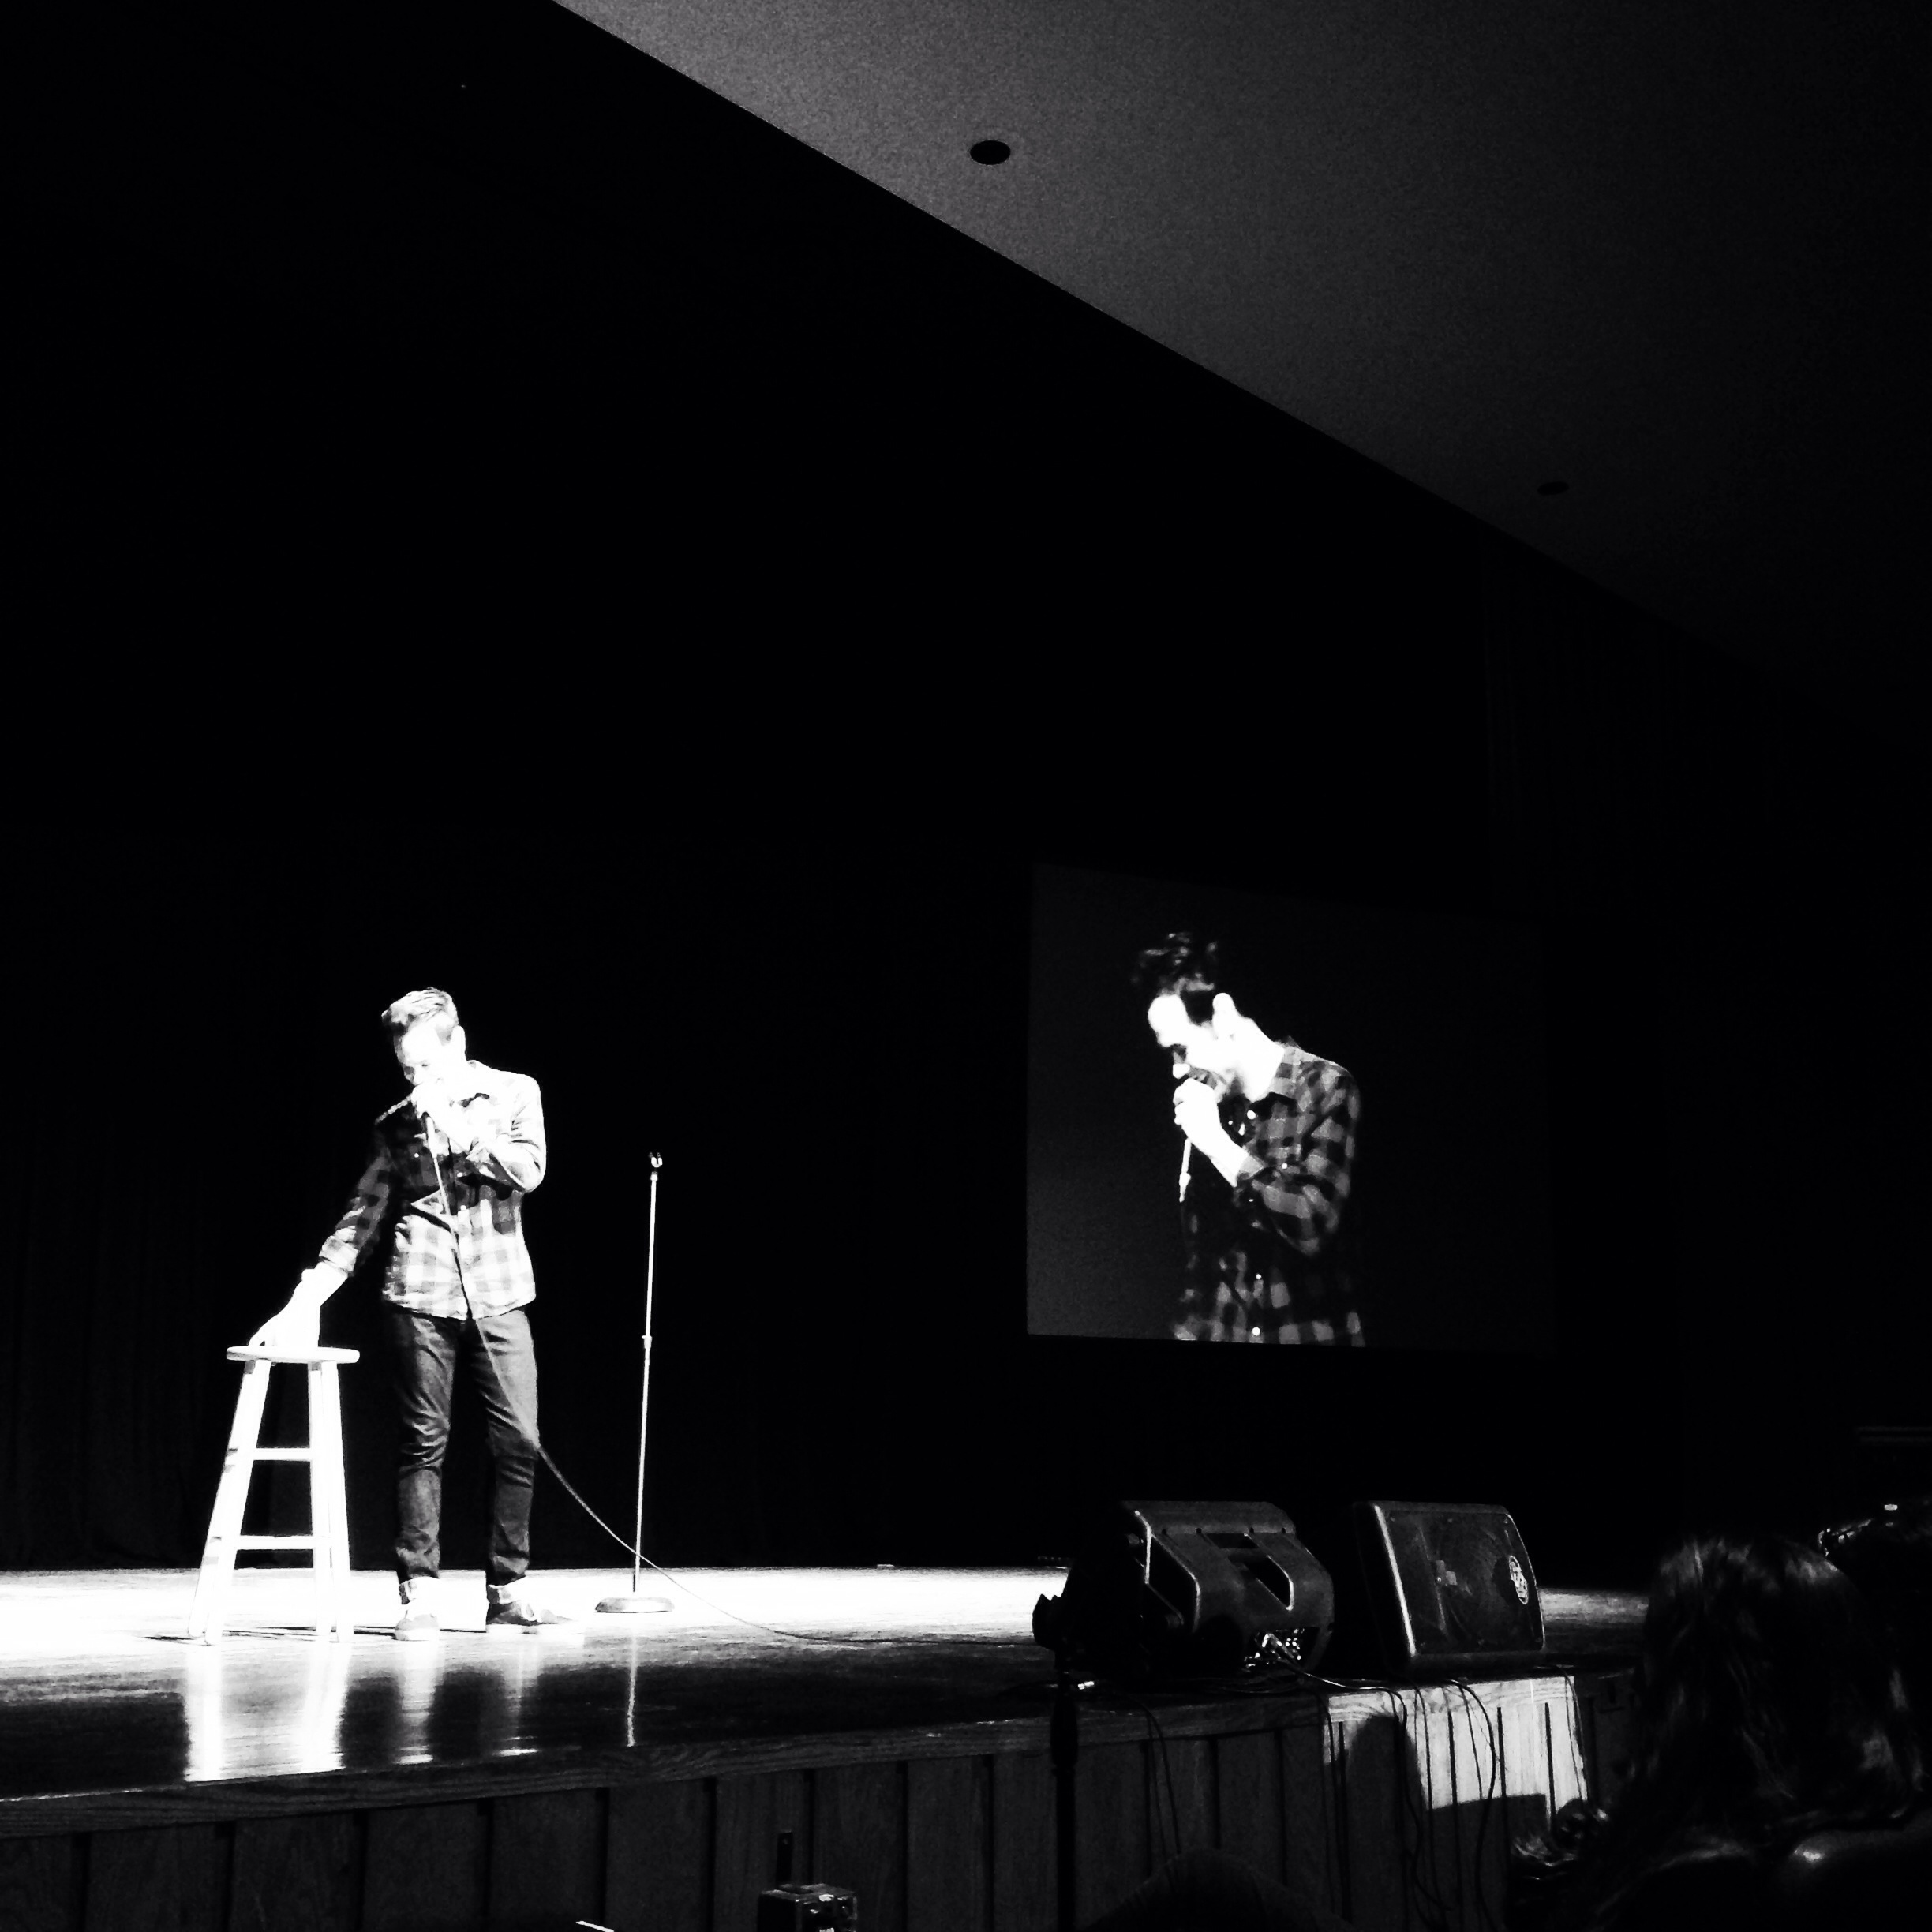 Michael Malone headlining the 12th Annual Comedy Jam at Findlay University.